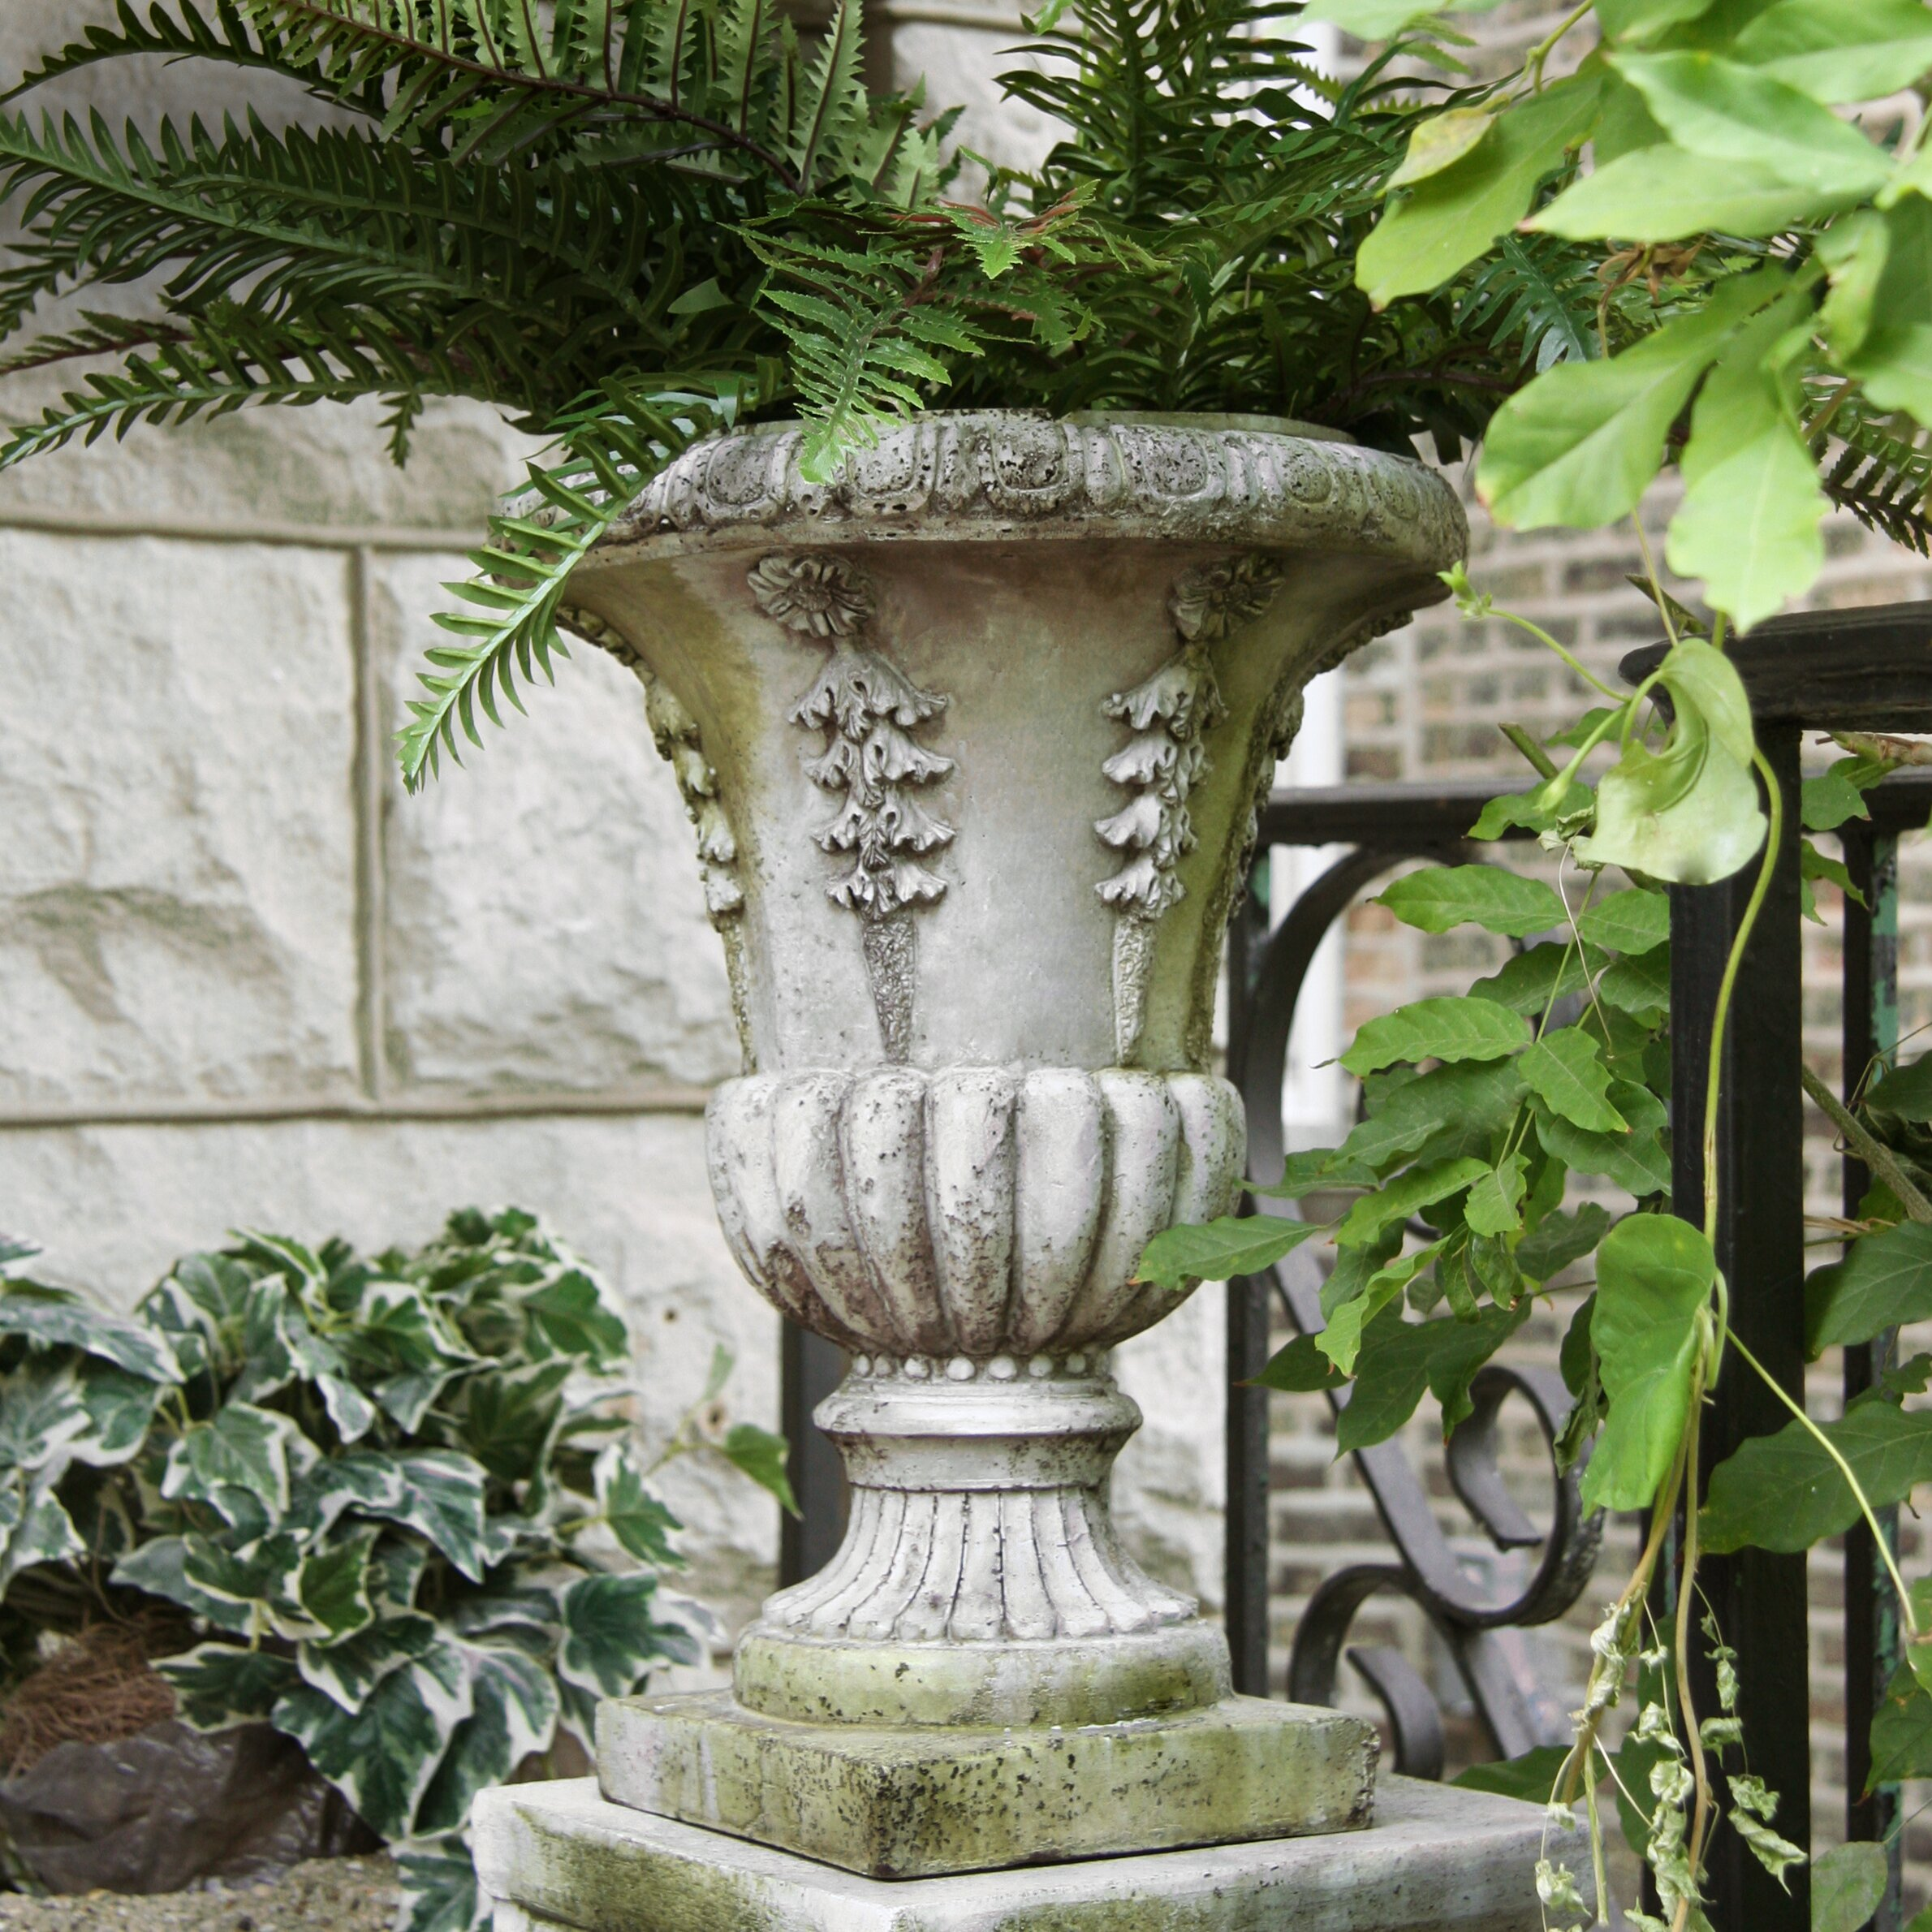 Orlandistatuary Round Urn Planter Amp Reviews Wayfair